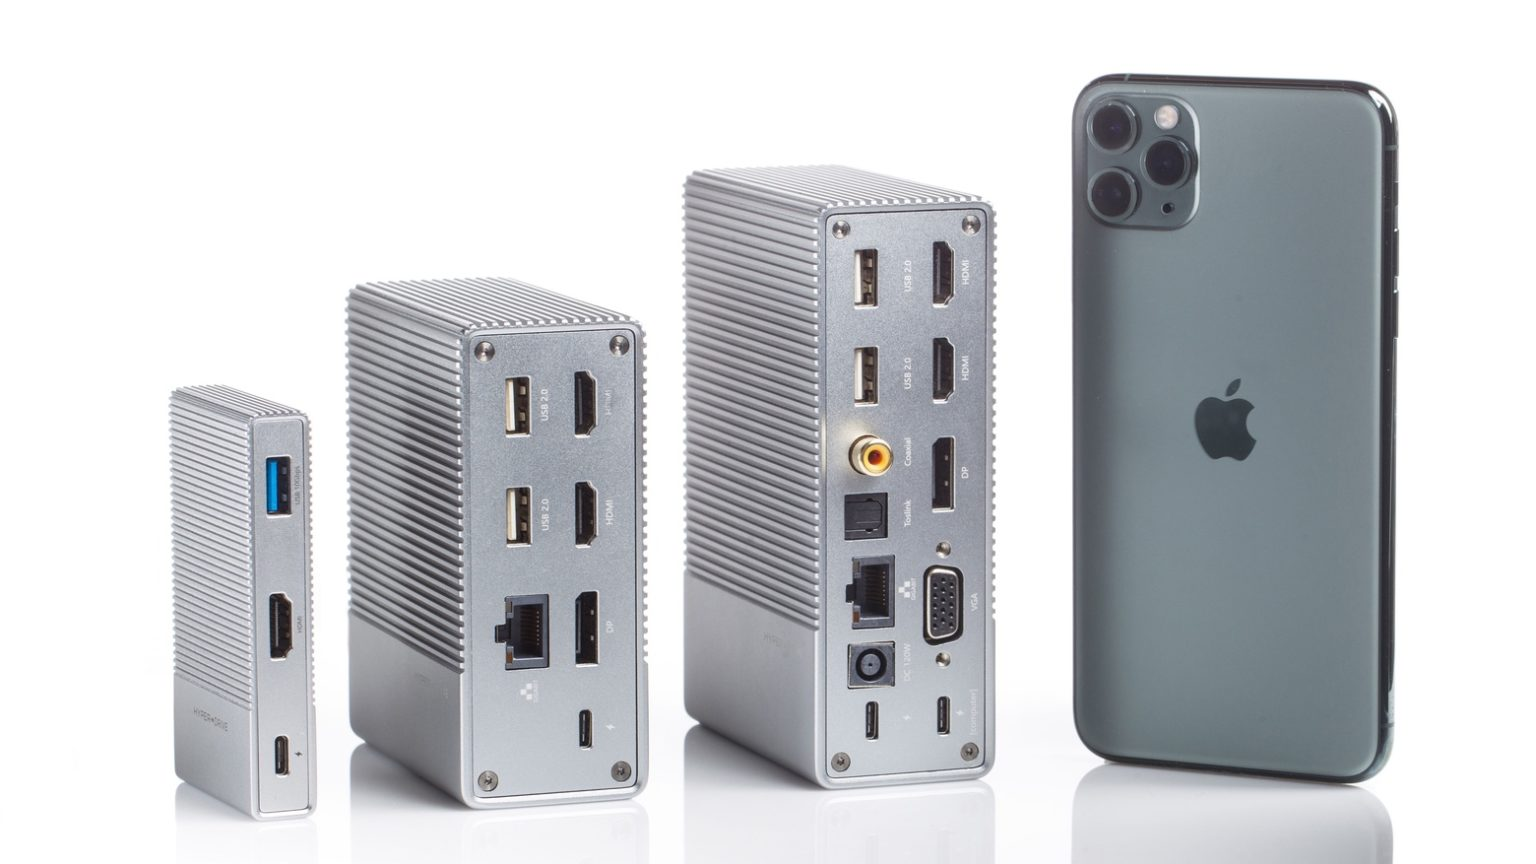 HyperDrive GEN2 offers up to 18 ports.